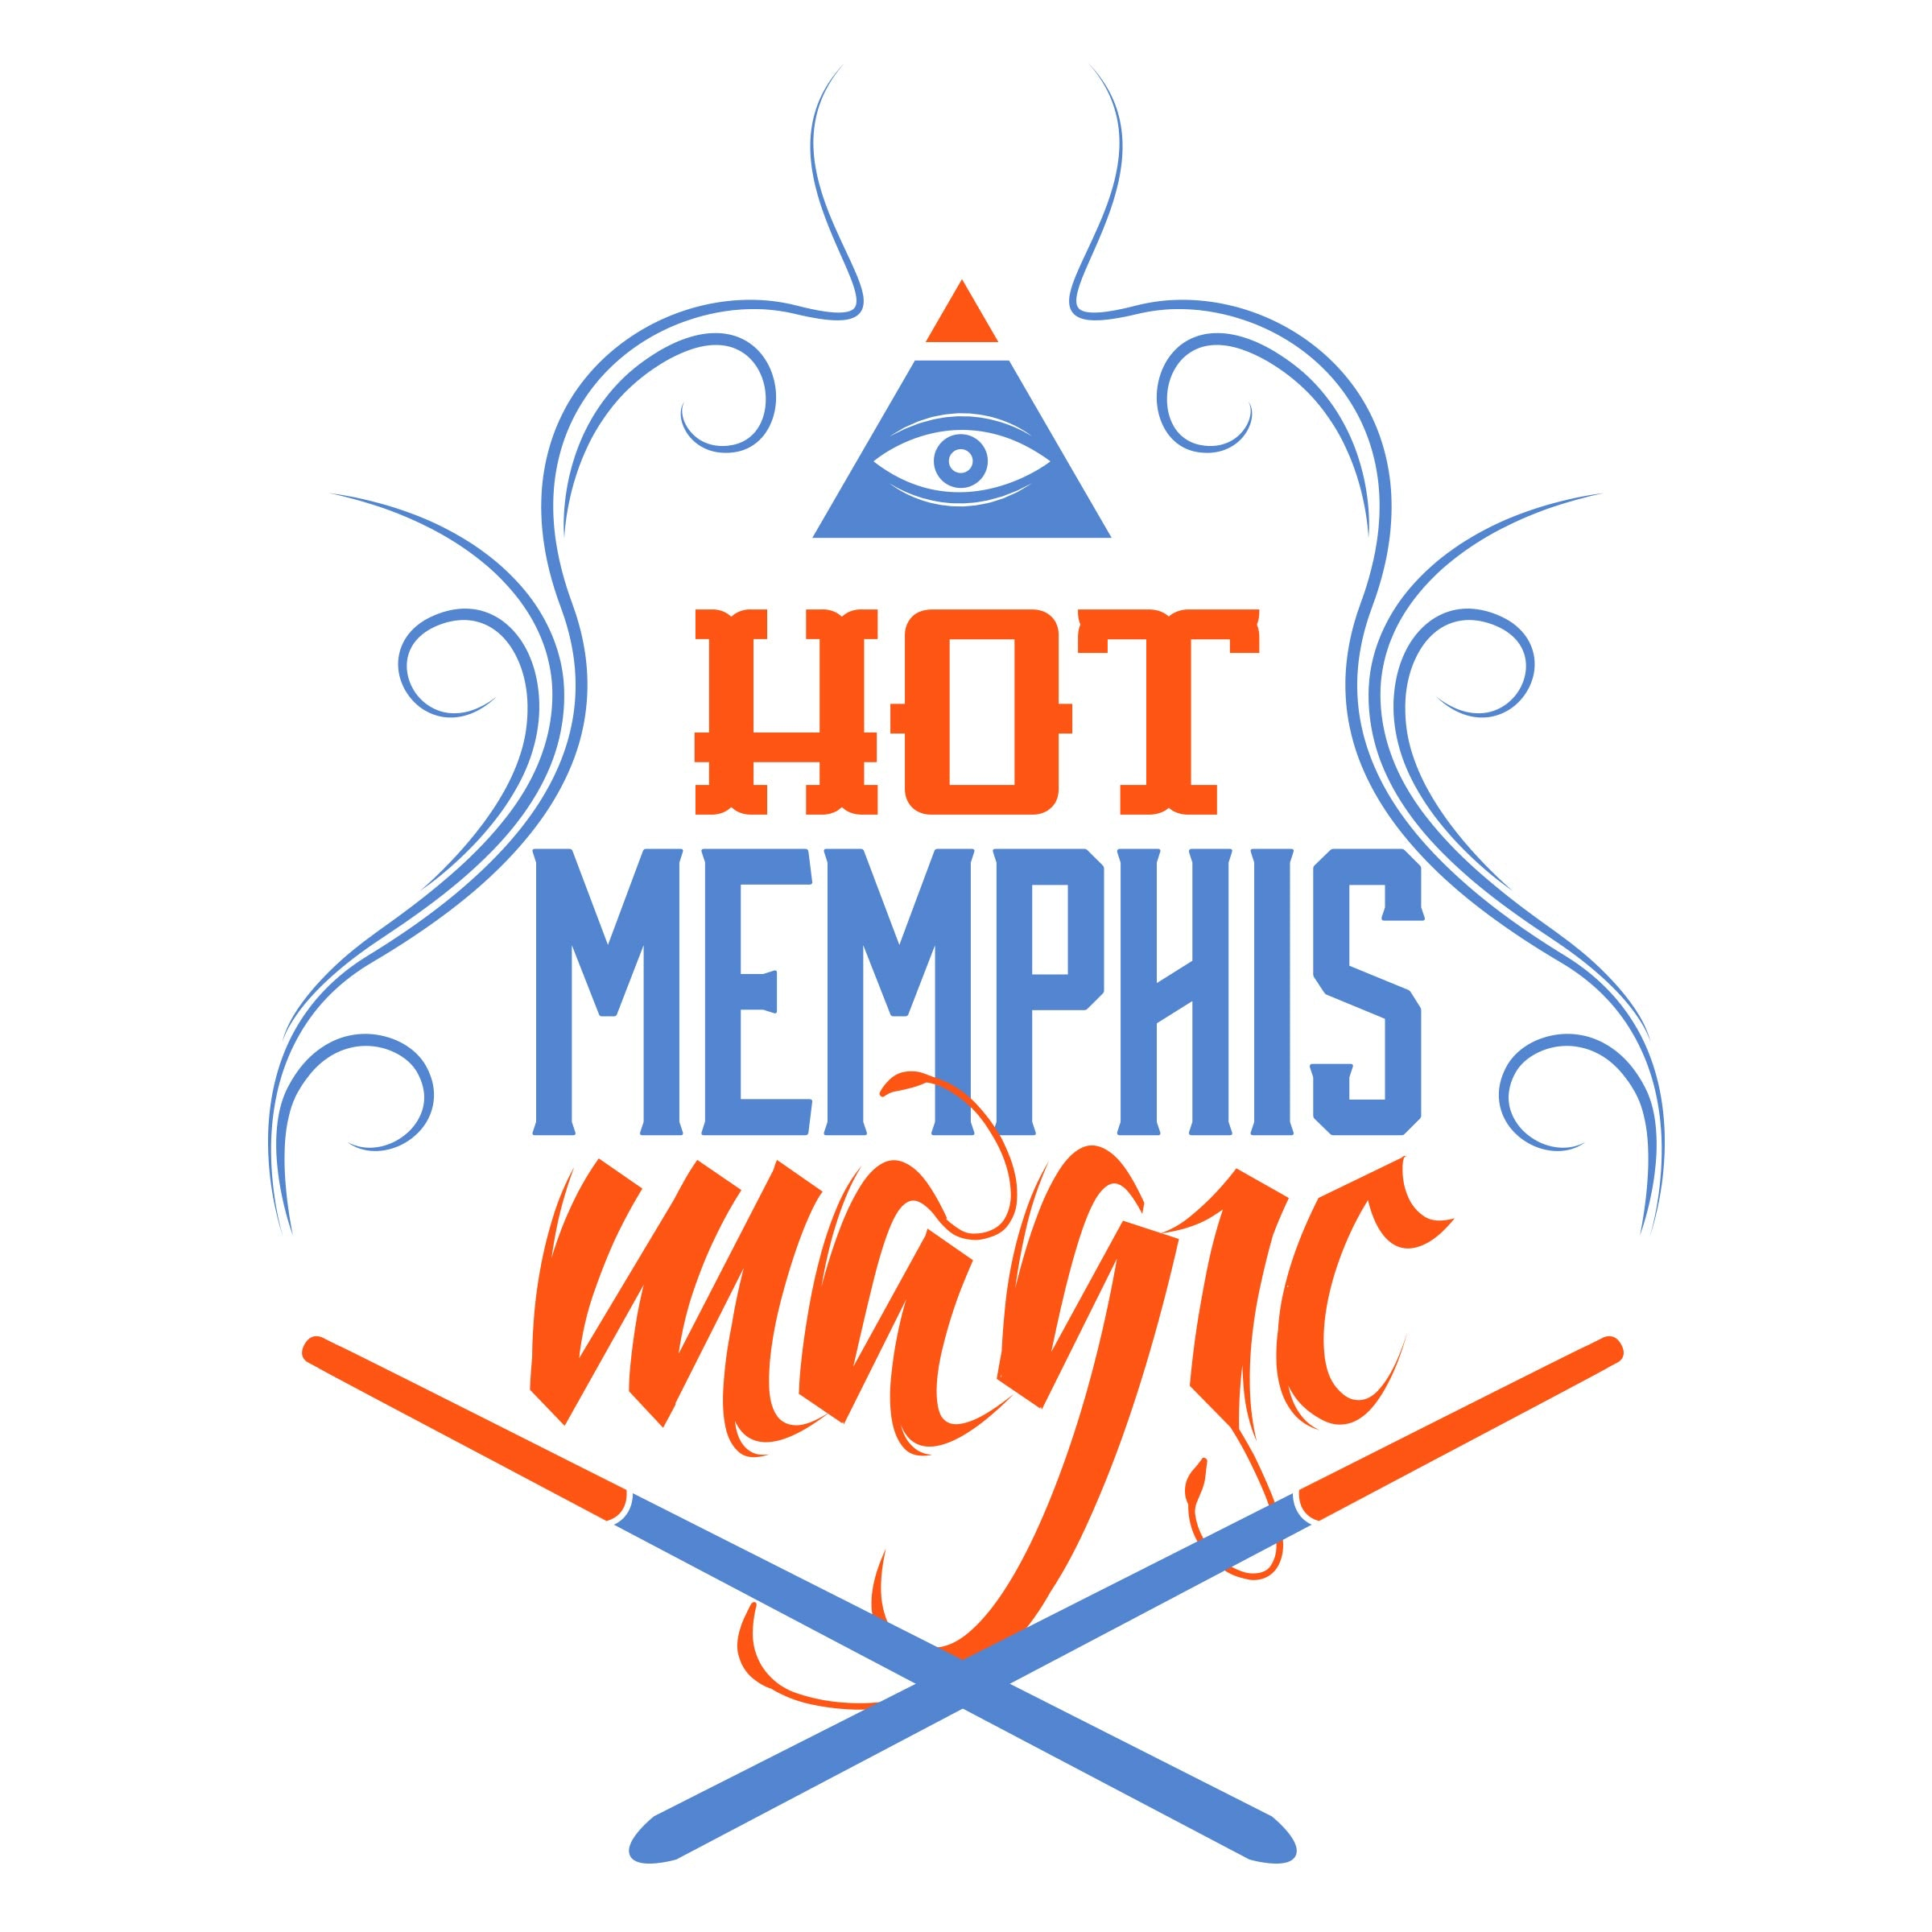 Hot Memphis Magic